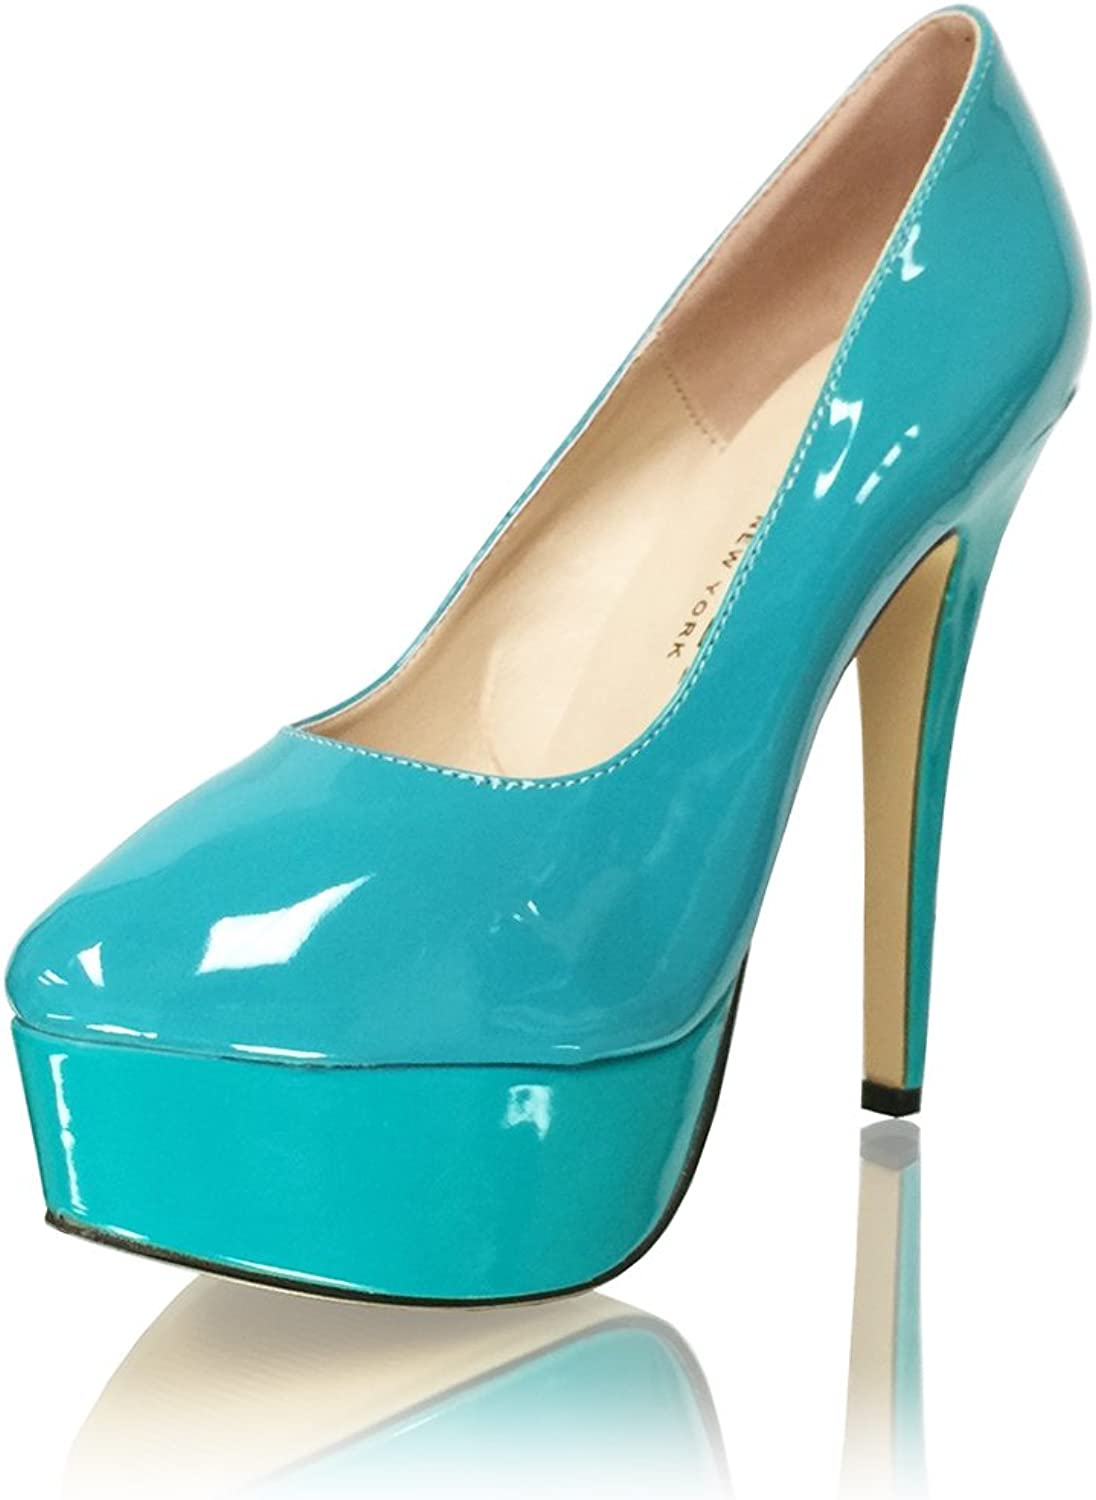 Marc Defang New York Women's Patent Leather Platformed High Heel Pumps